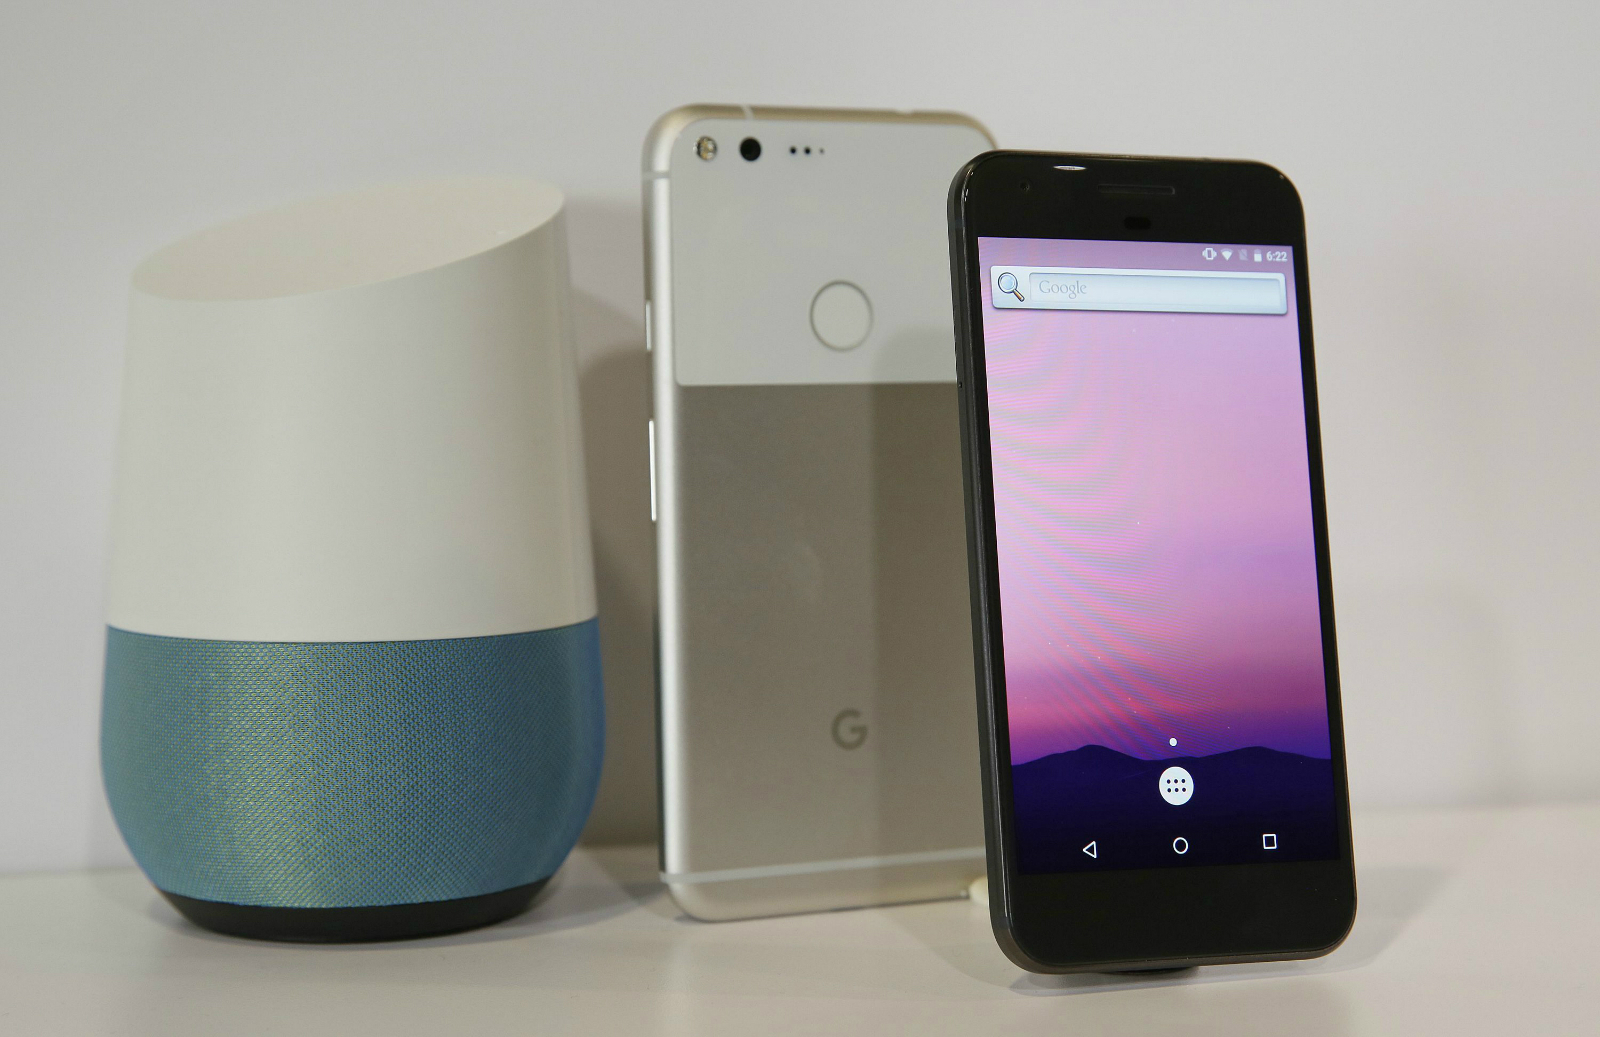 Google Home vs. Amazon Echo Voice